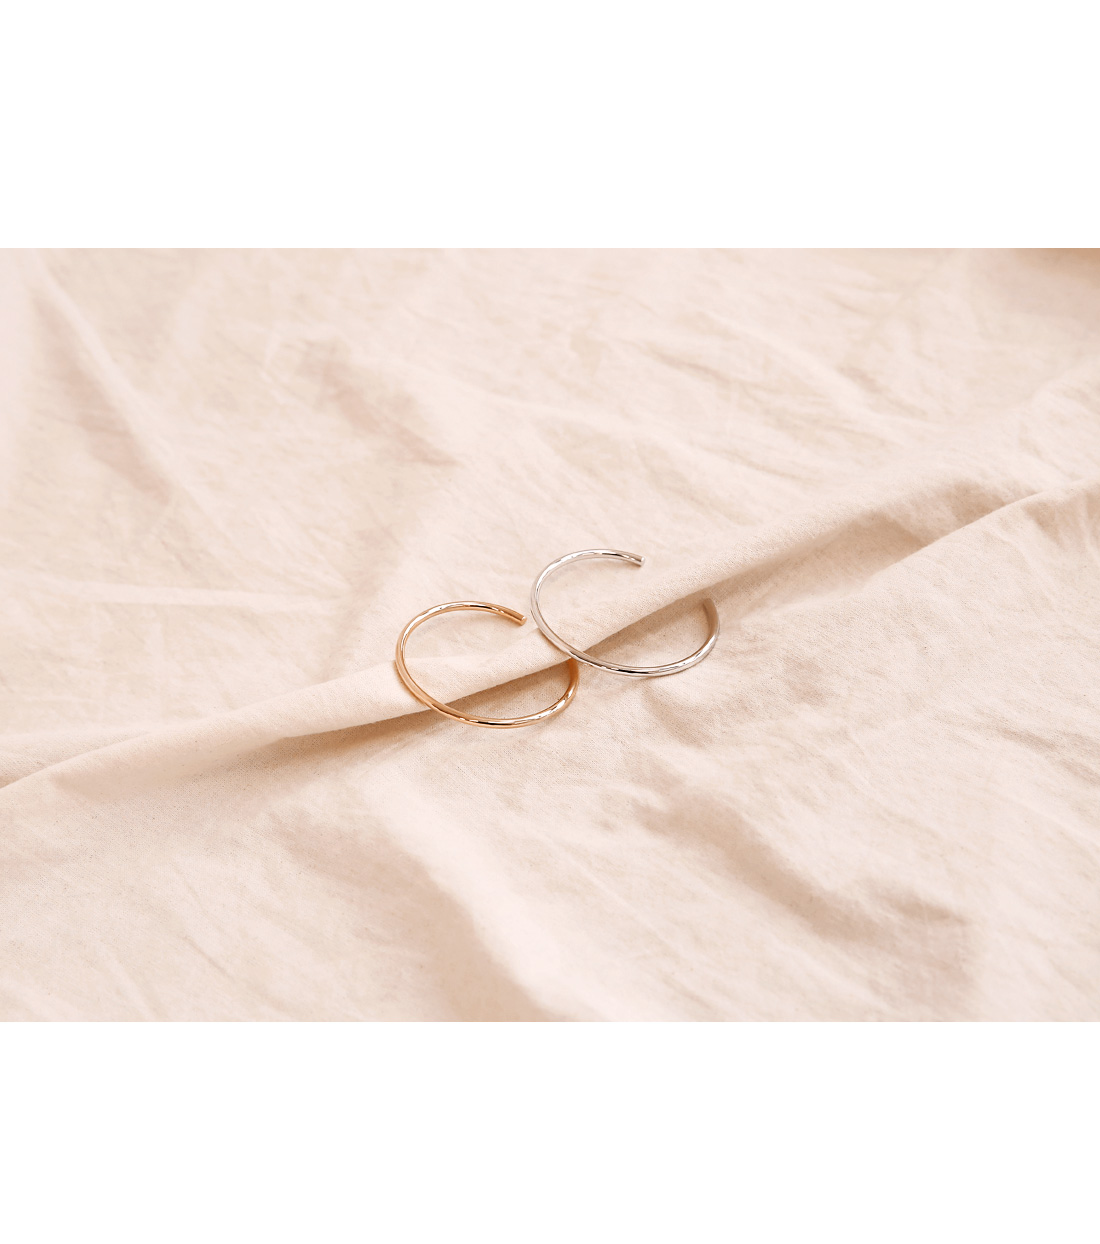 PODE BASIC RING BRACELET